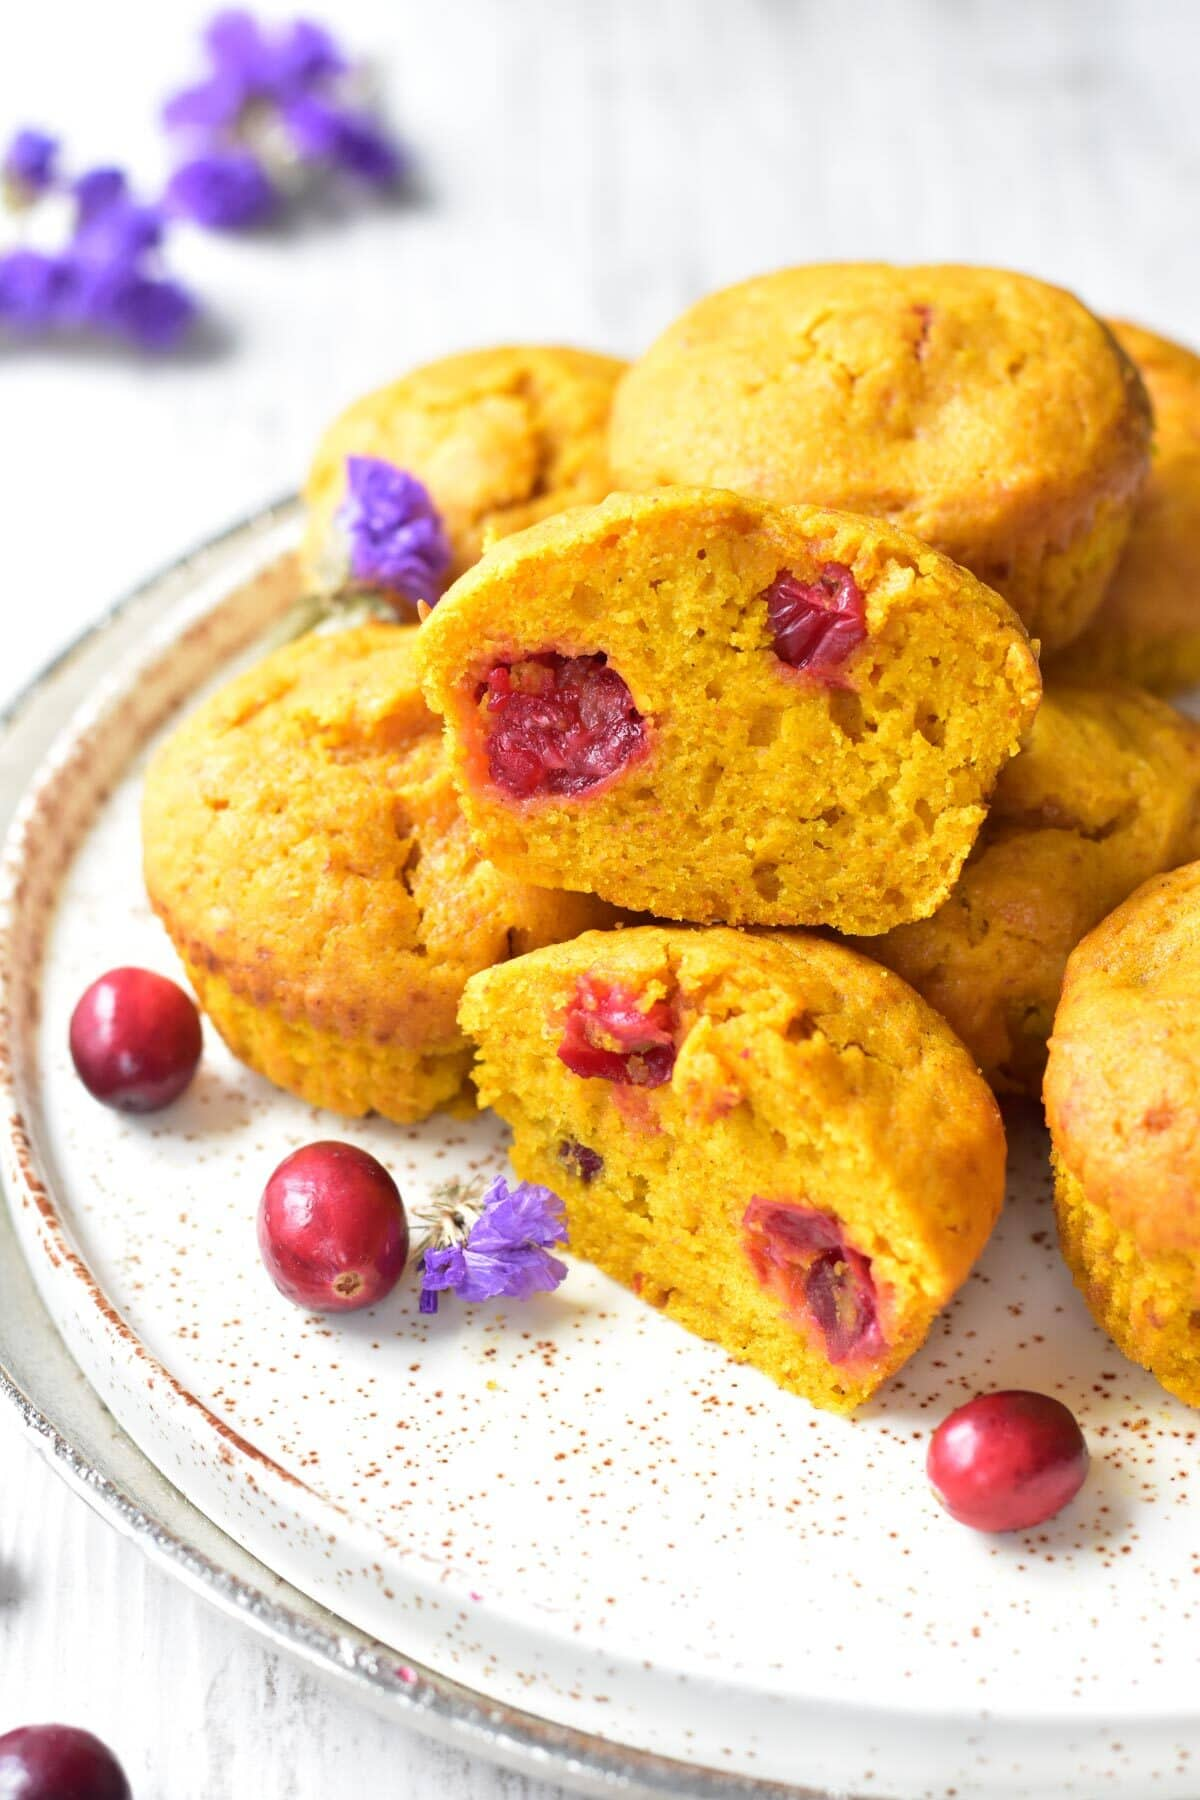 Pumpkin cranberry muffins on a white plate. Two muffins are cut in half.